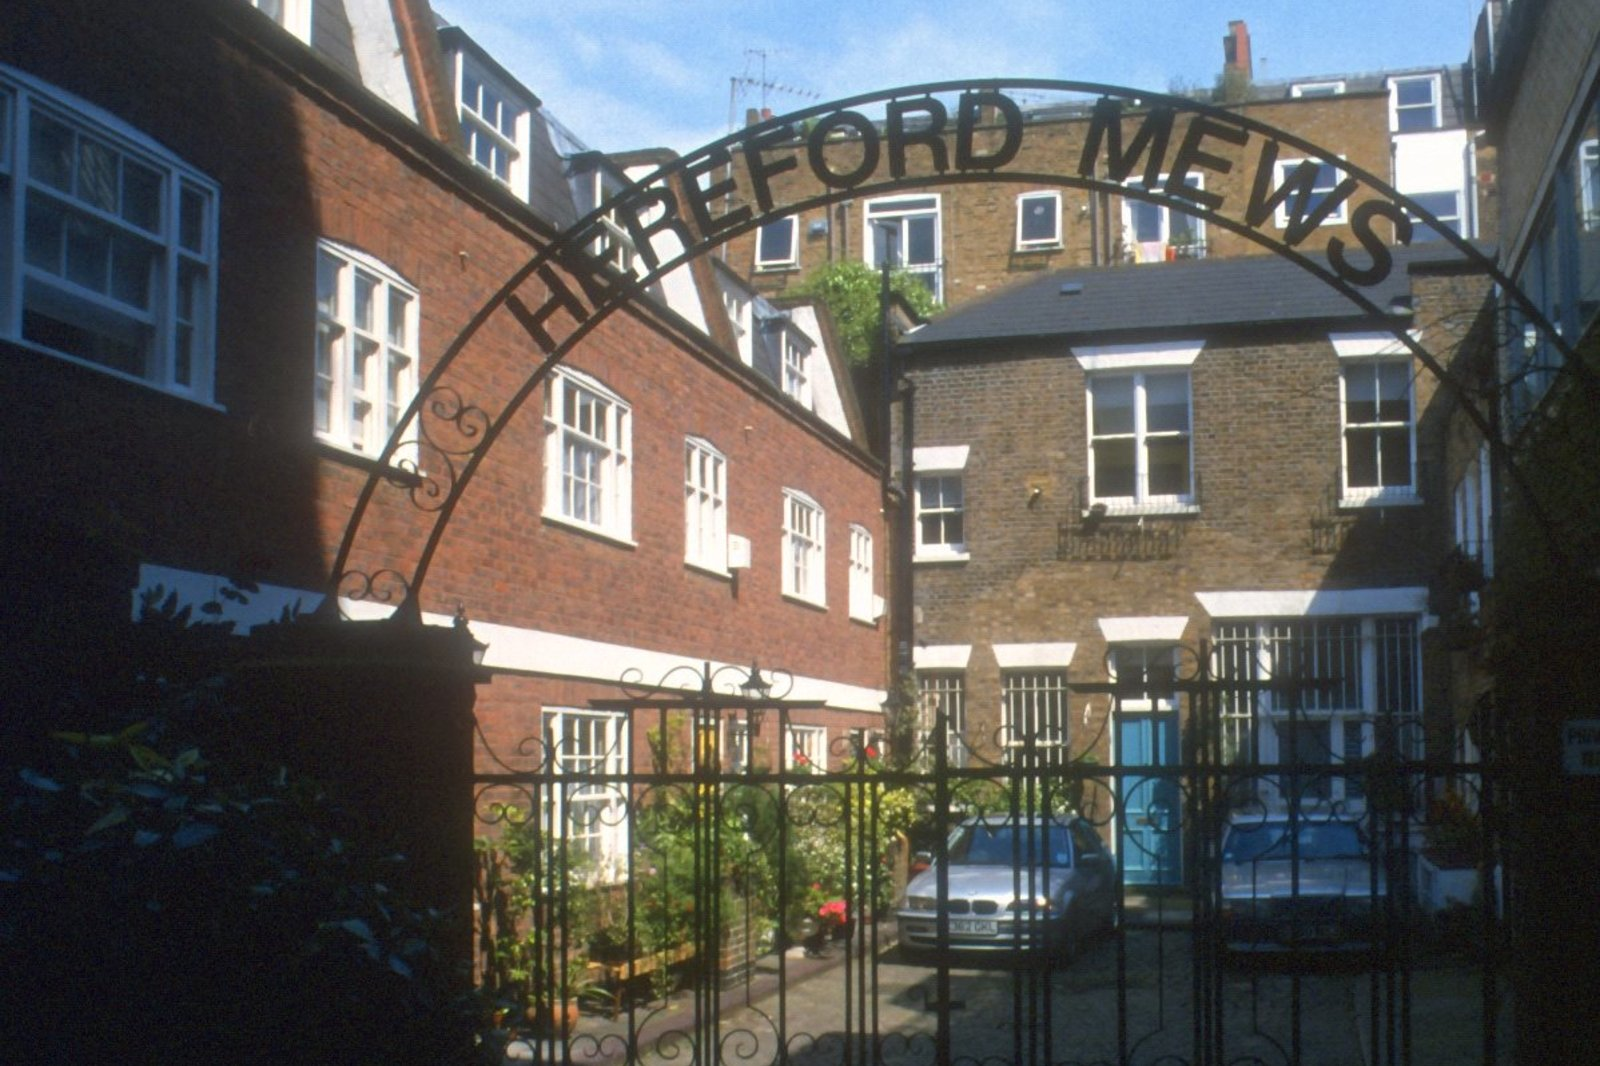 Hereford Mews, Notting Hill, London, W2